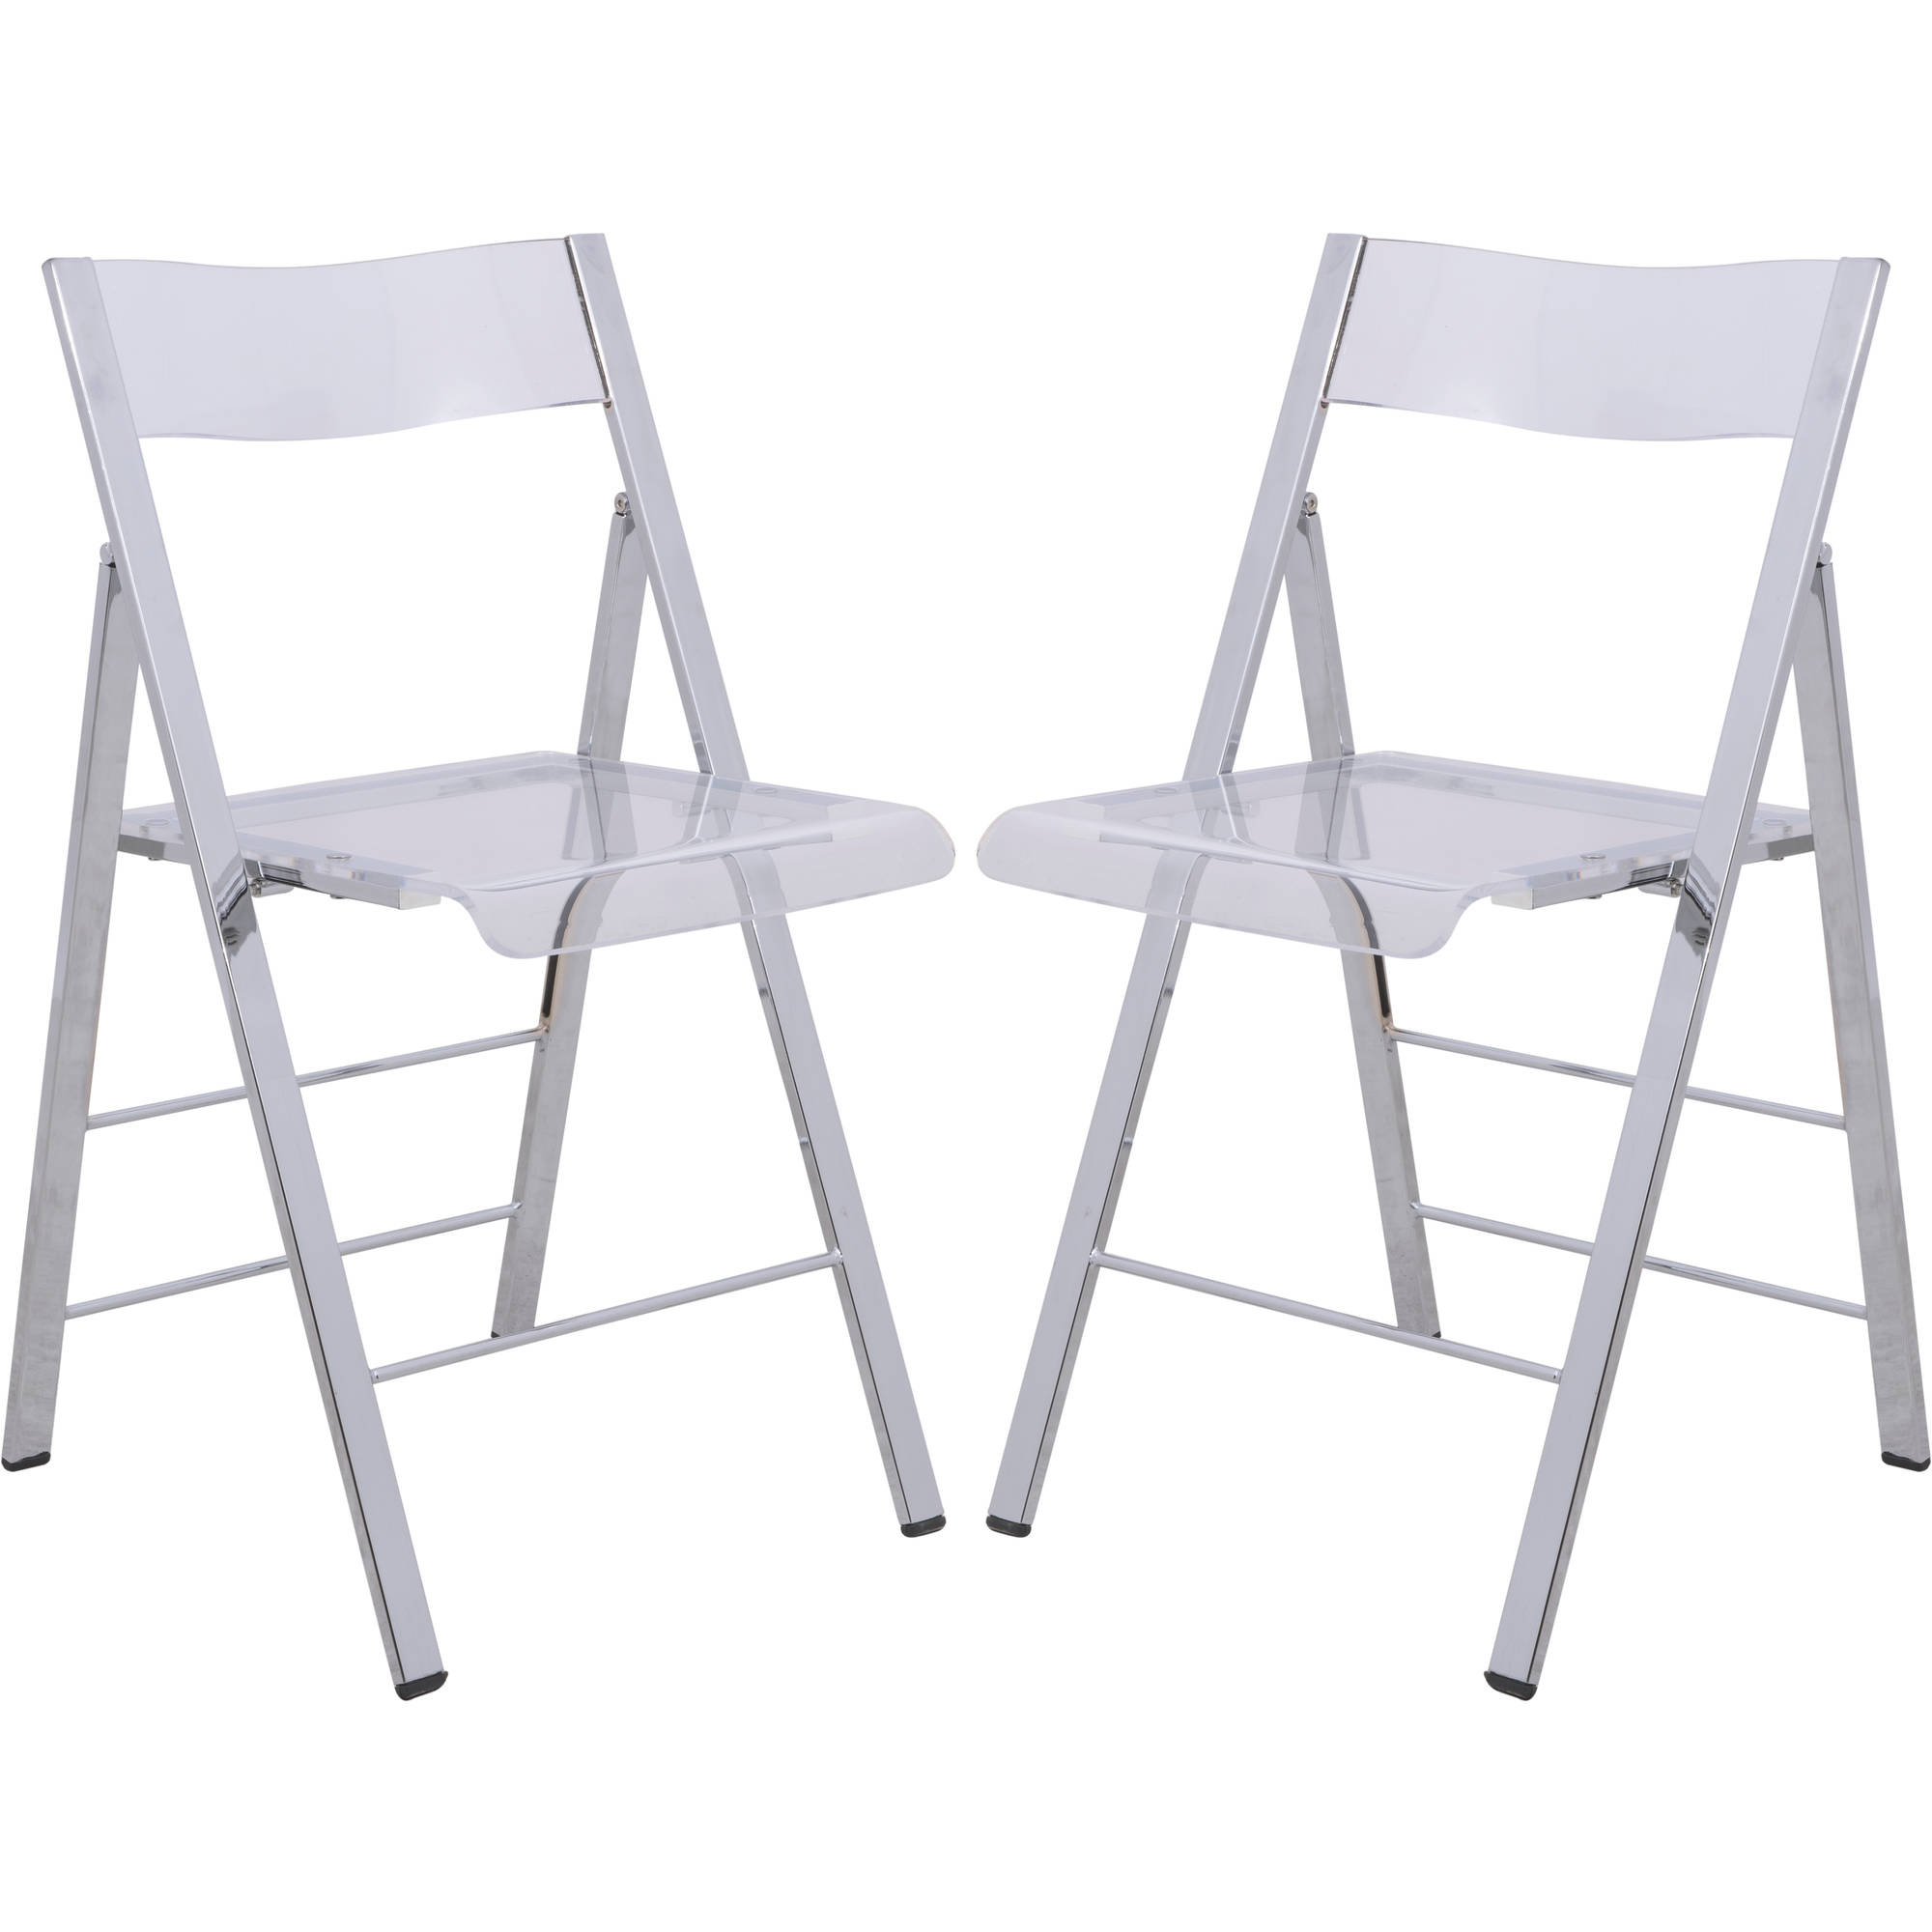 LeisureMod Menno Modern Acrylic Folding Chair in Clear, Set of 2